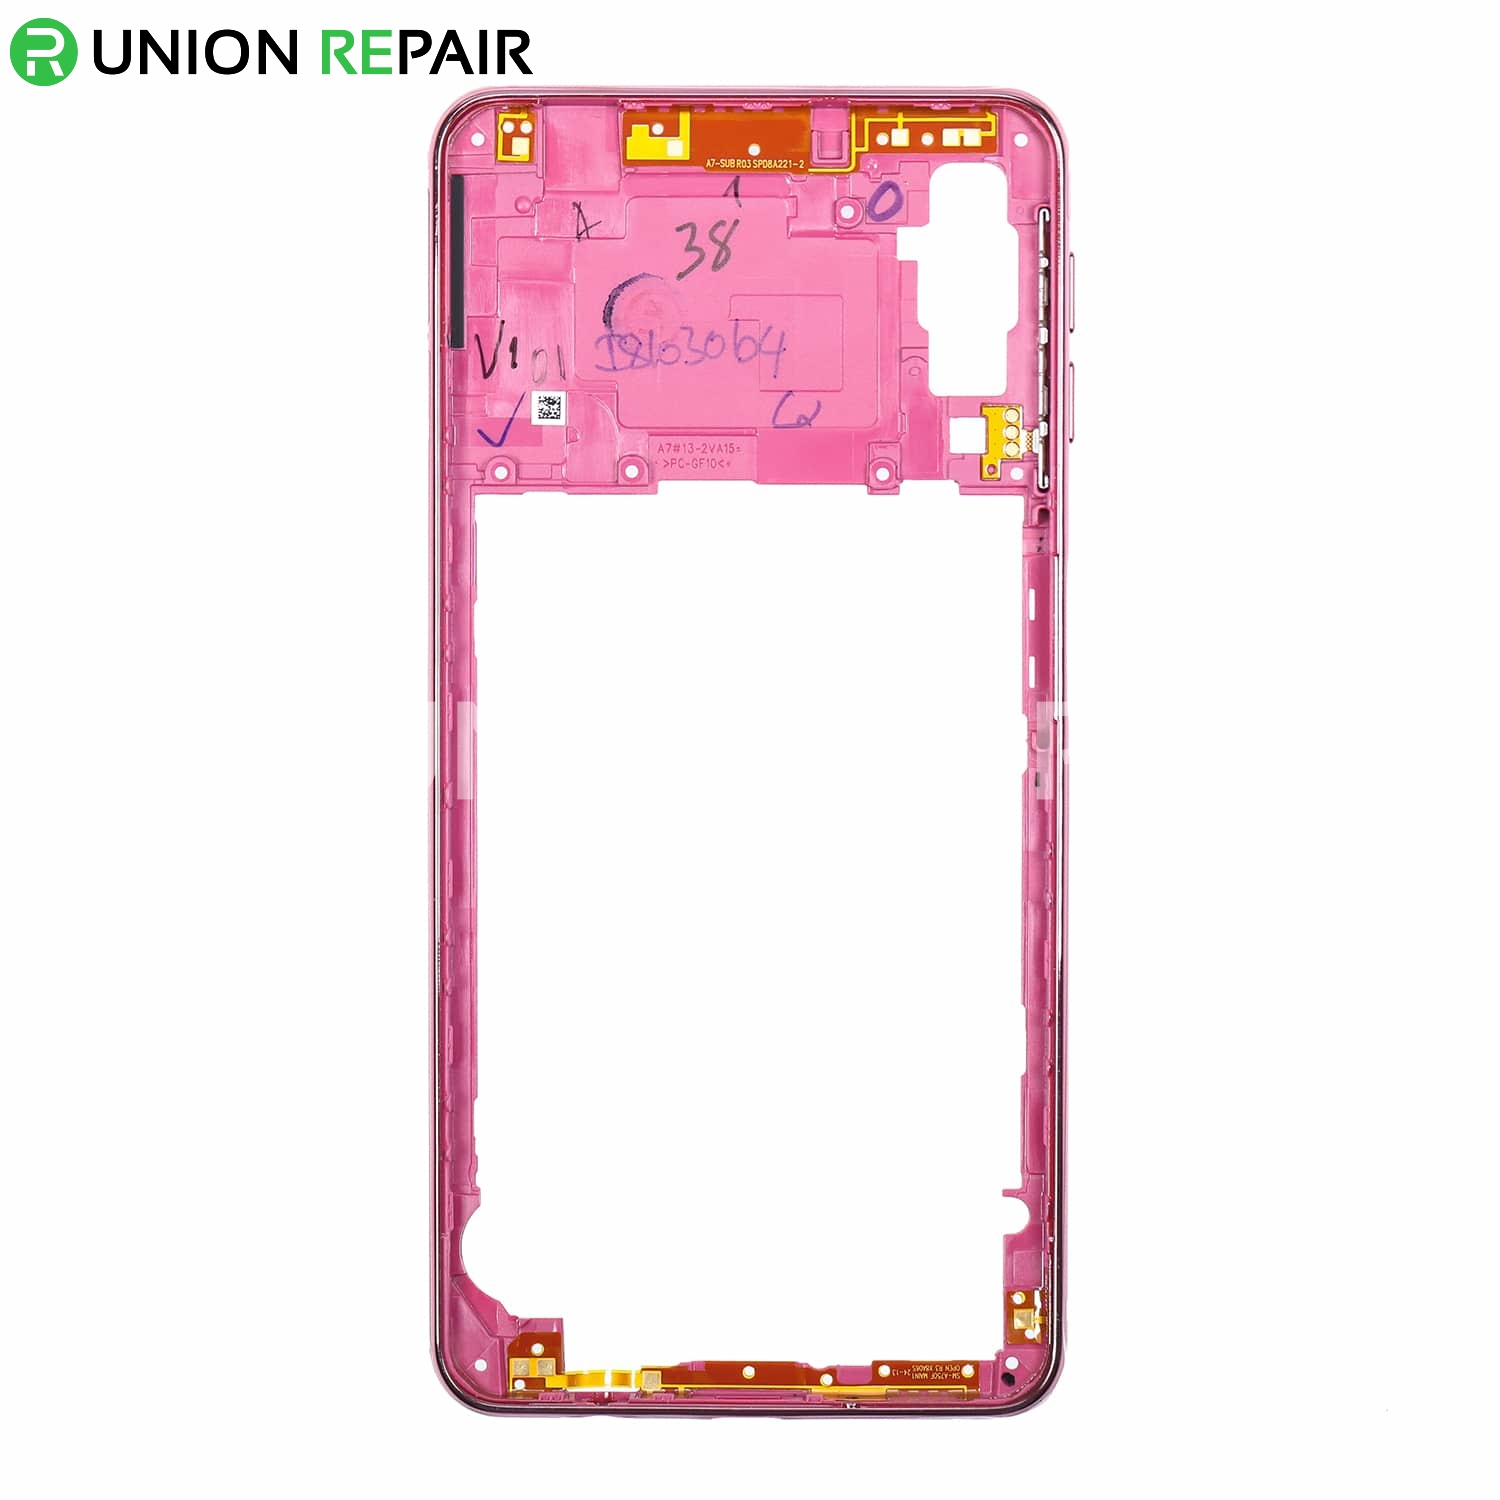 Replacement for Samsung Galaxy A7 (2018) SM-A750 Rear Housing - Pink